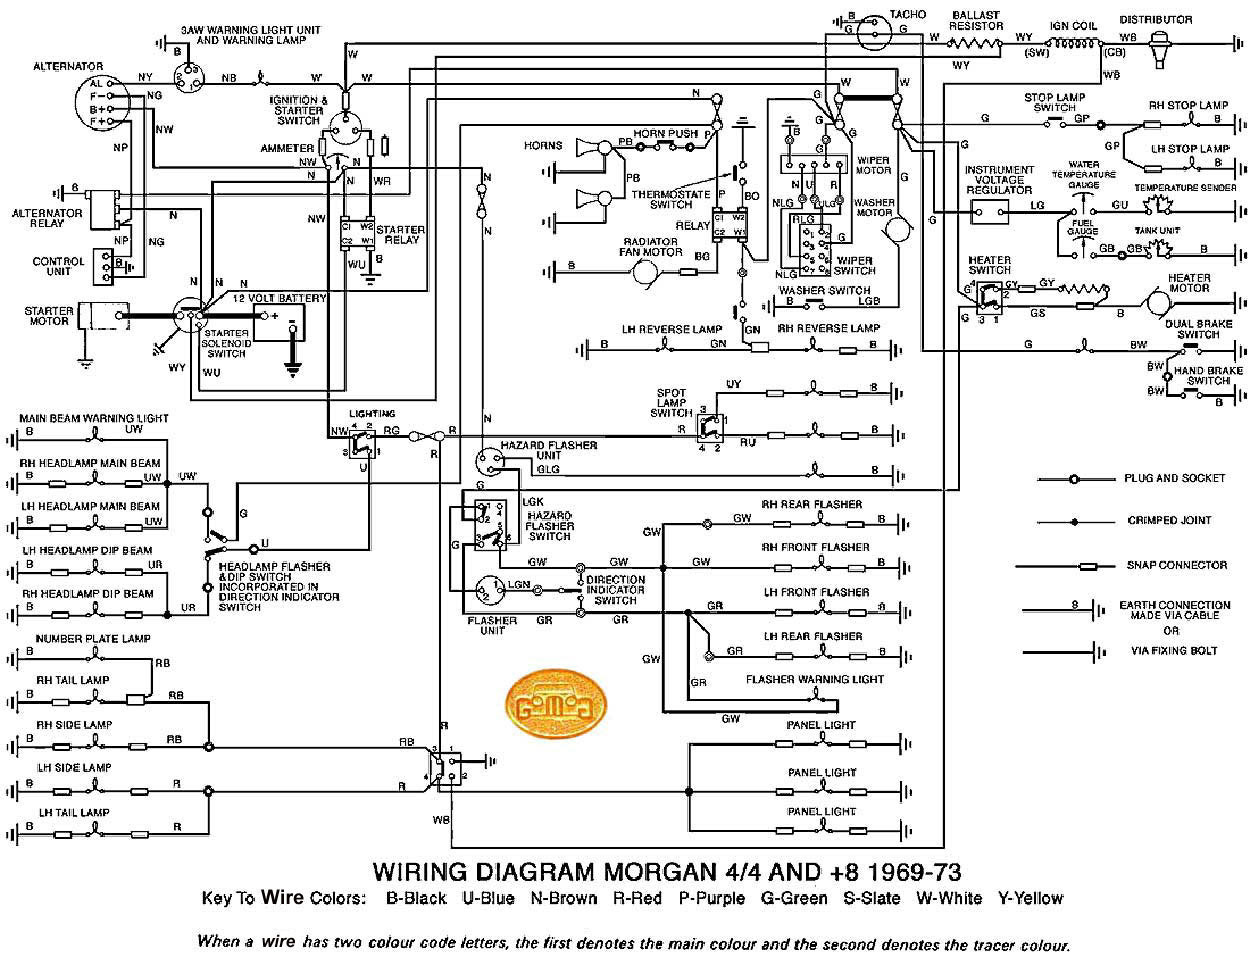 diagram] country leisure spas wiring diagram full version hd quality wiring  diagram - autoaccidentdiagram.rapfrance.fr  database design tool - create database diagrams online